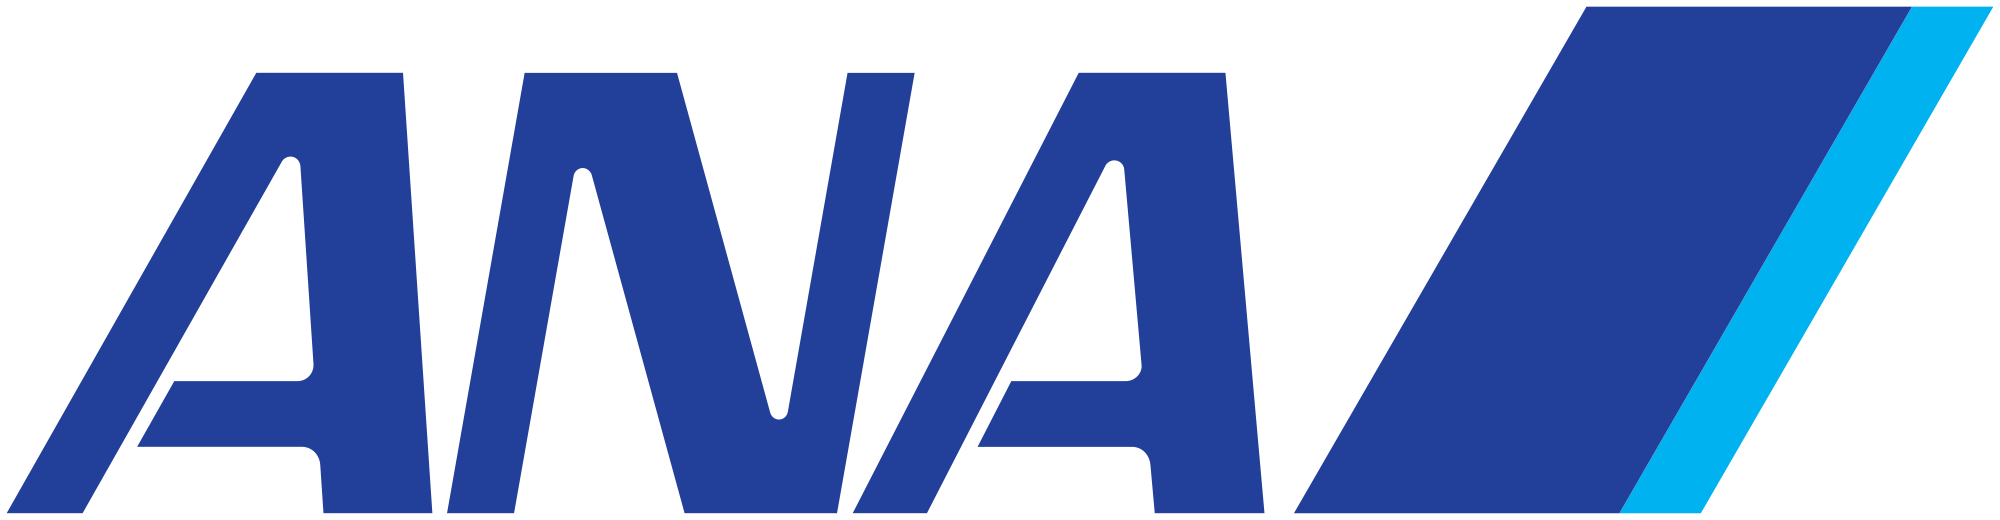 Télephone information entreprise  ANA (All Nippon Airways)